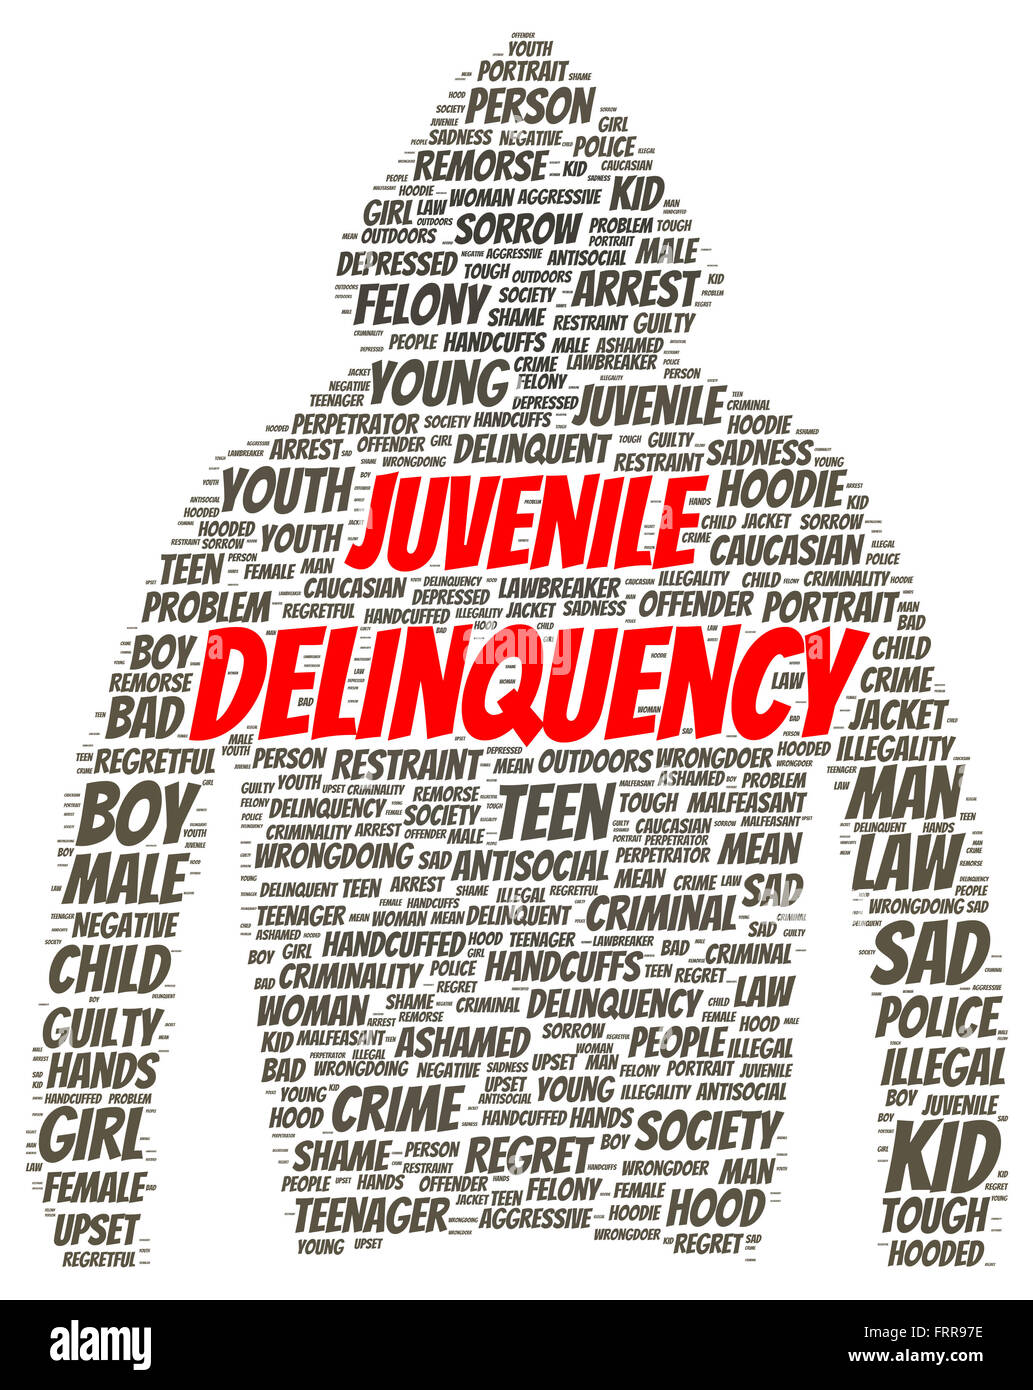 juvinile deliquency 01082018 there are numerous causes of juvenile delinquency, including domestic violence, living in areas of poverty and high crime rates, inadequate social support.